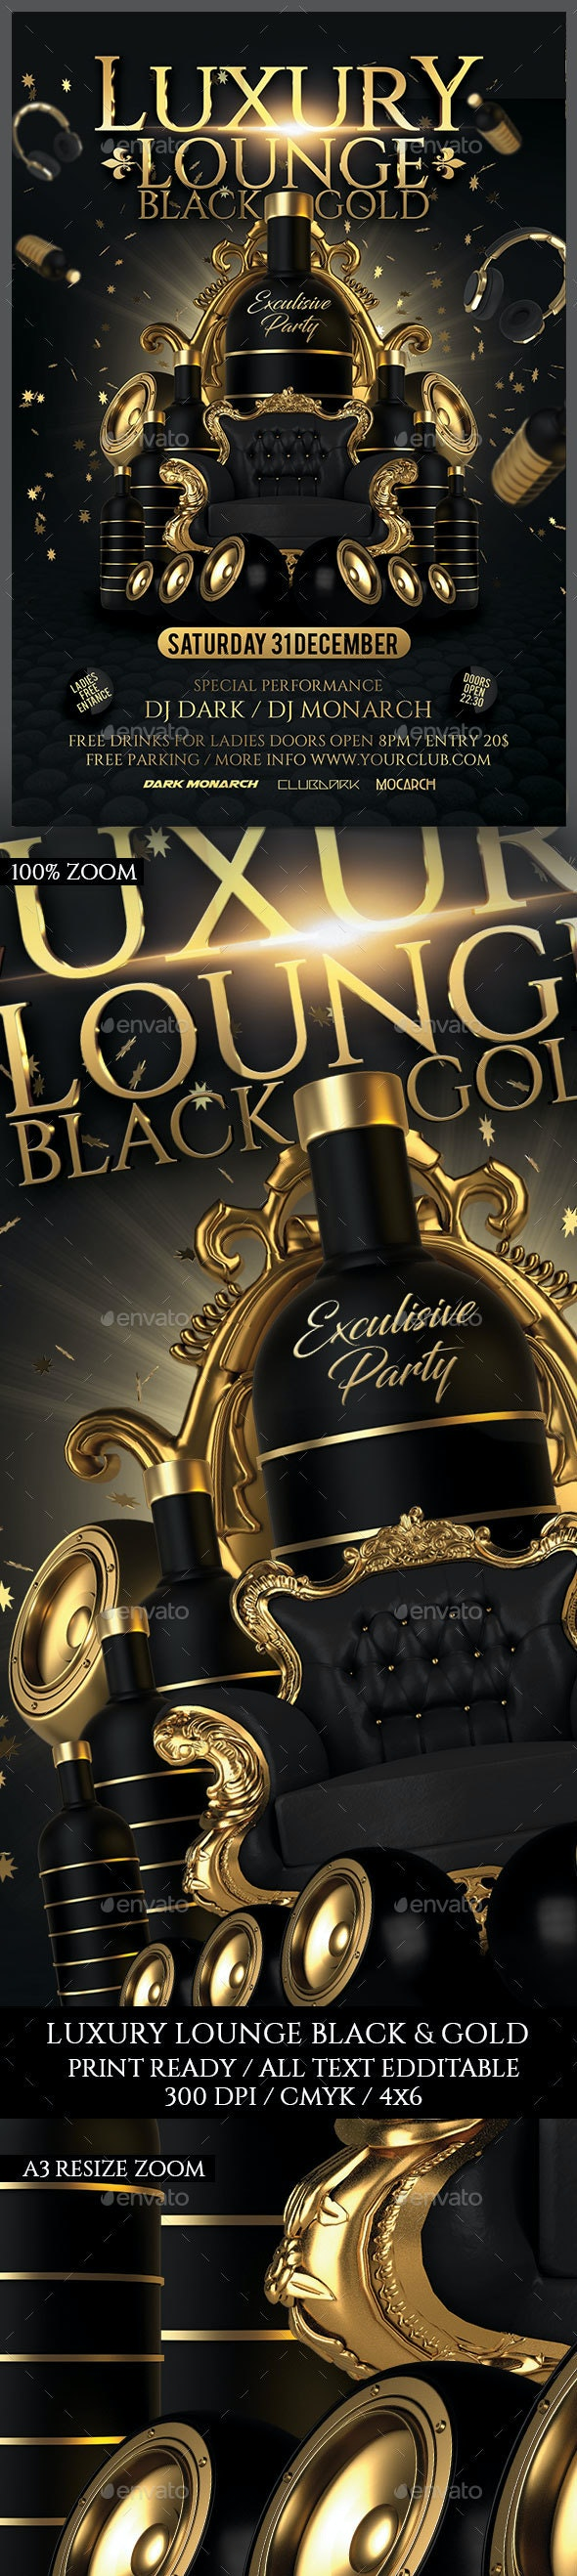 Luxury Lounge Black & Gold Party - Clubs & Parties Events